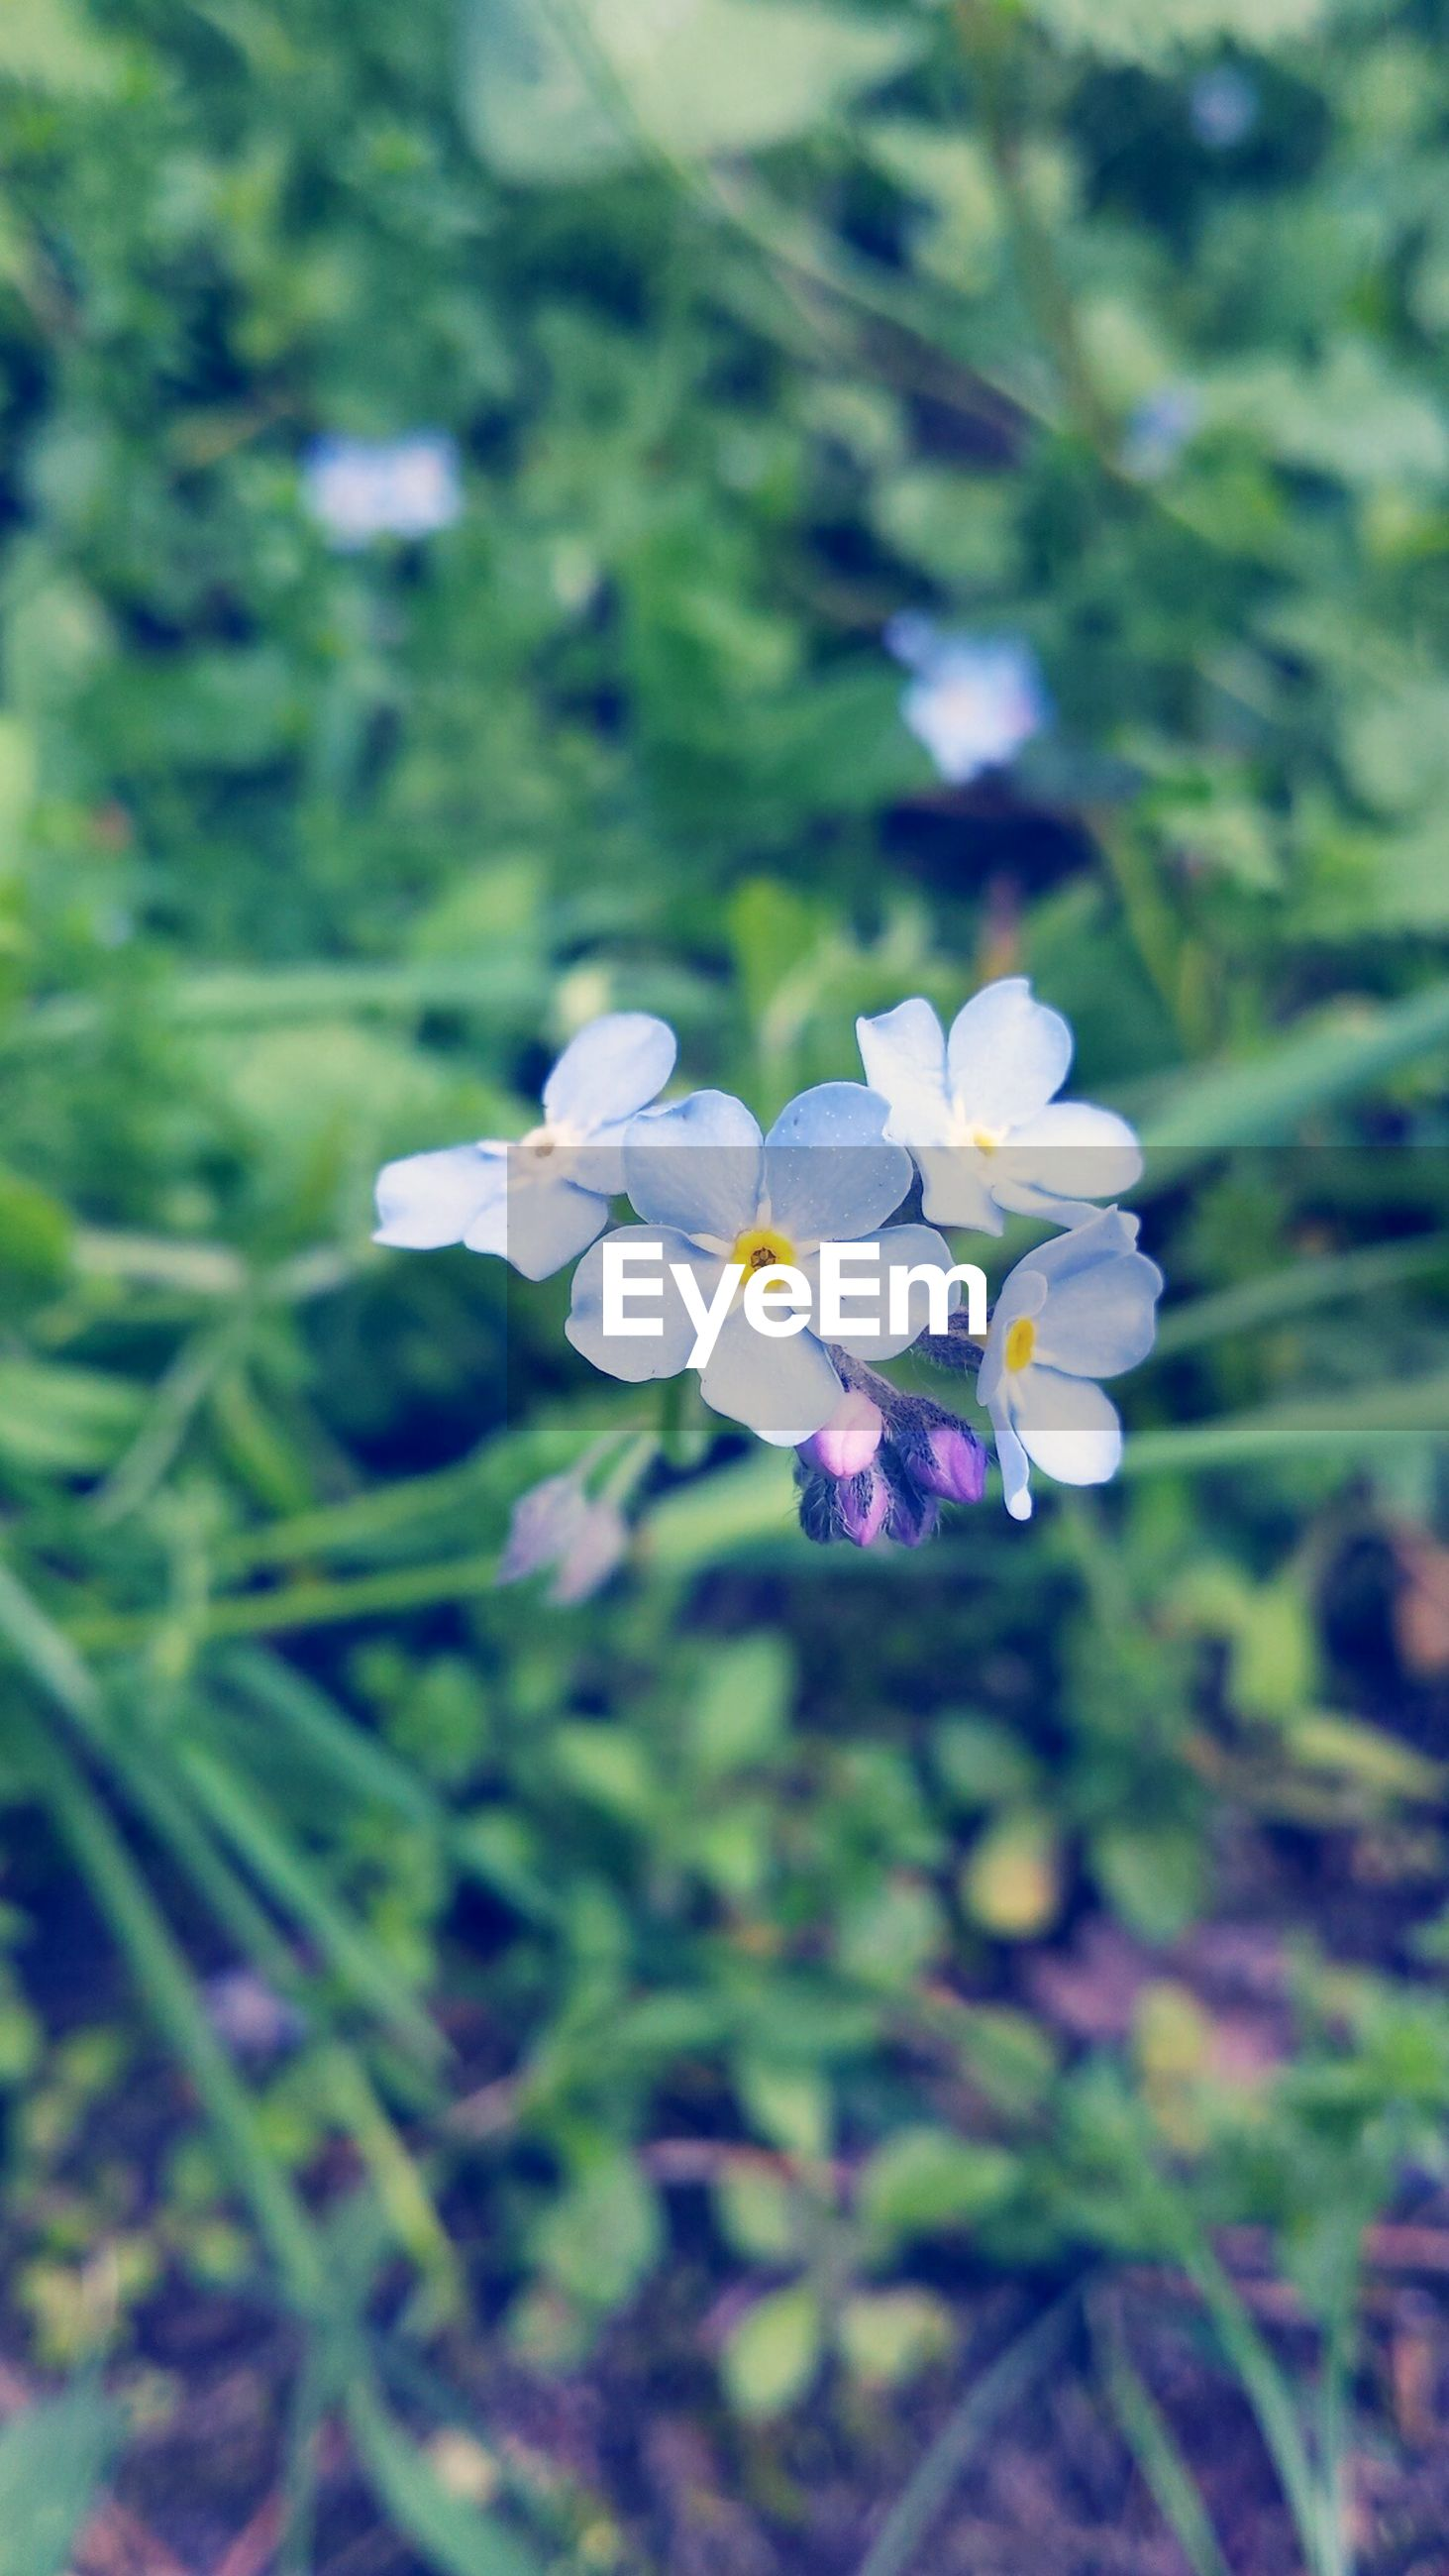 flower, freshness, fragility, growth, petal, beauty in nature, flower head, purple, blooming, blue, focus on foreground, nature, plant, close-up, in bloom, white color, selective focus, blossom, stem, leaf